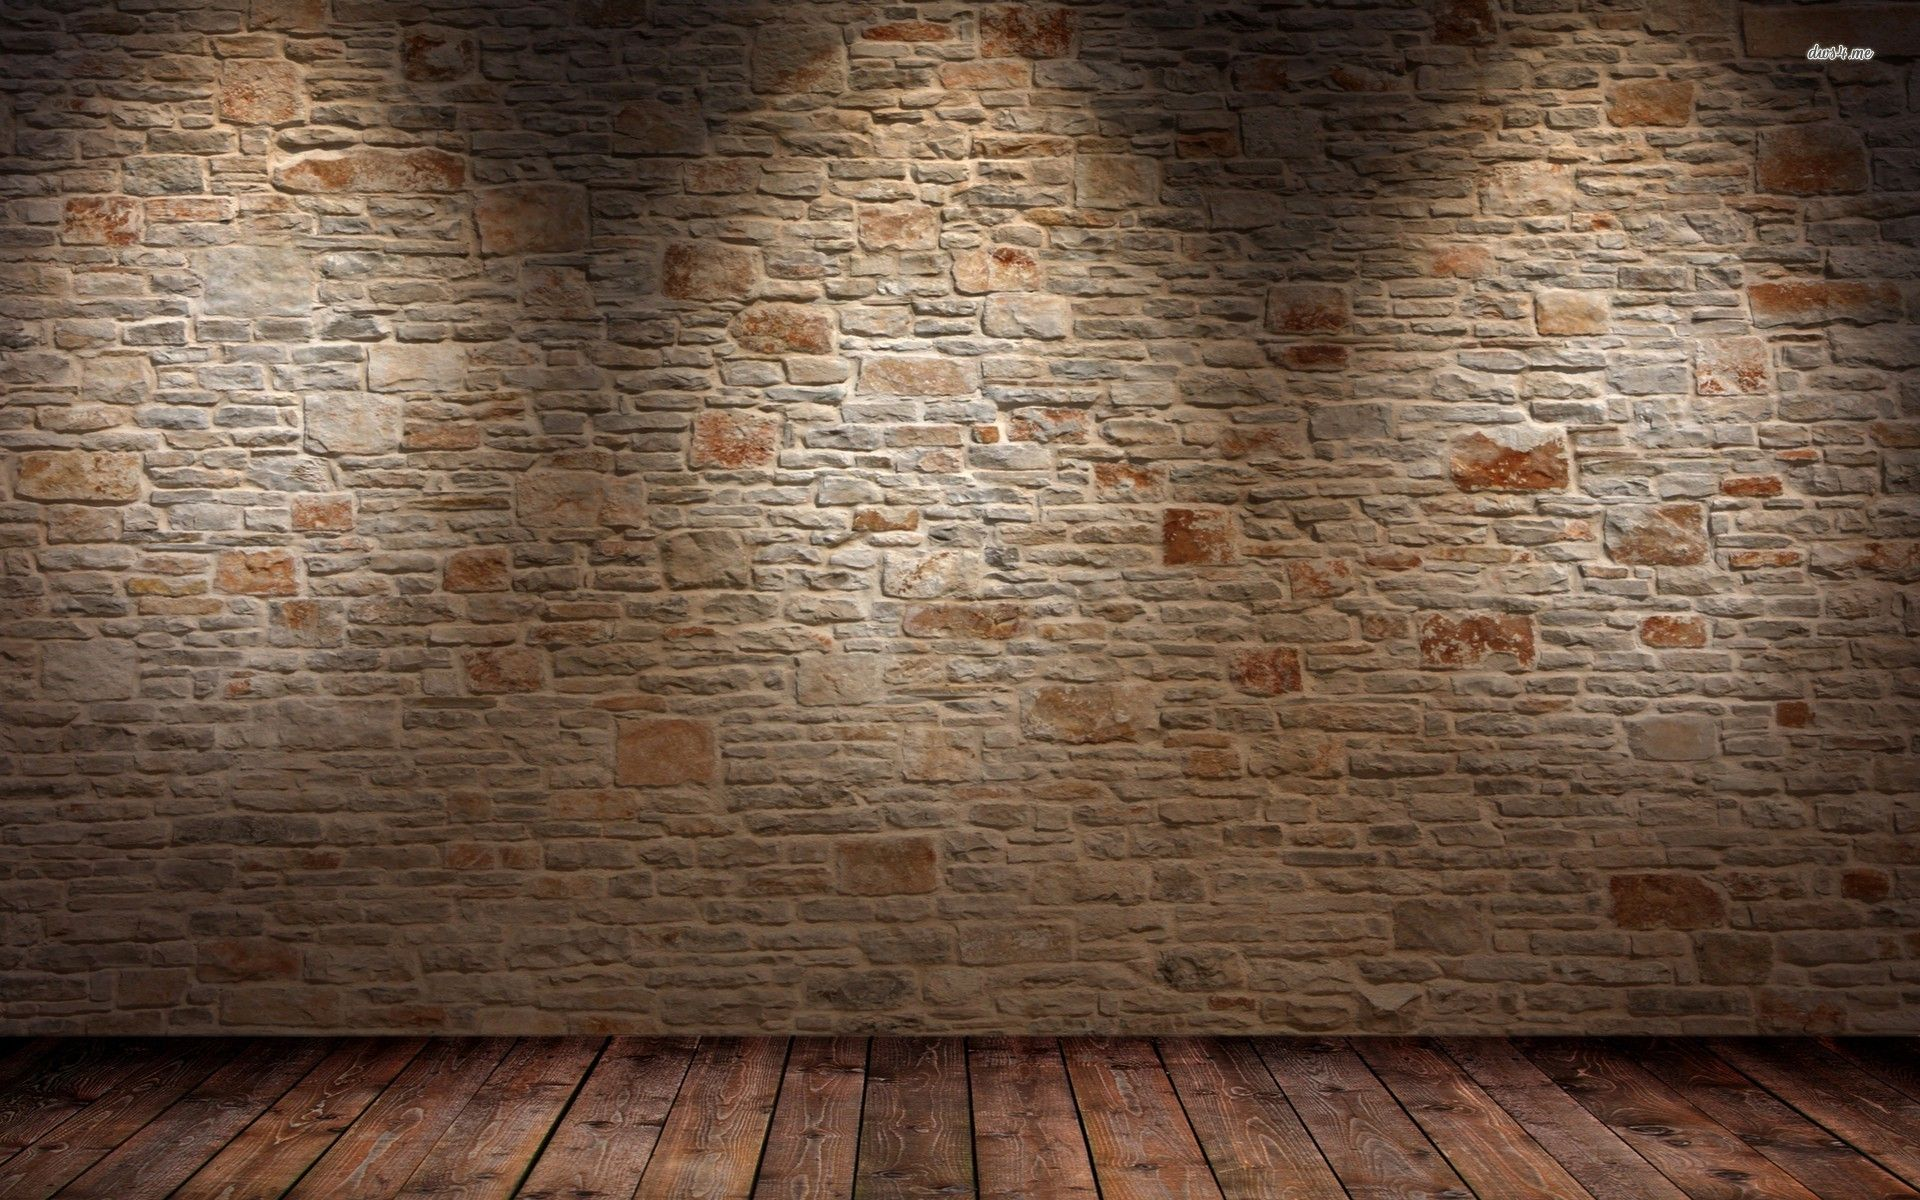 brick wall and wood floor hd wallpaper 1 abstract desktop wallpaper